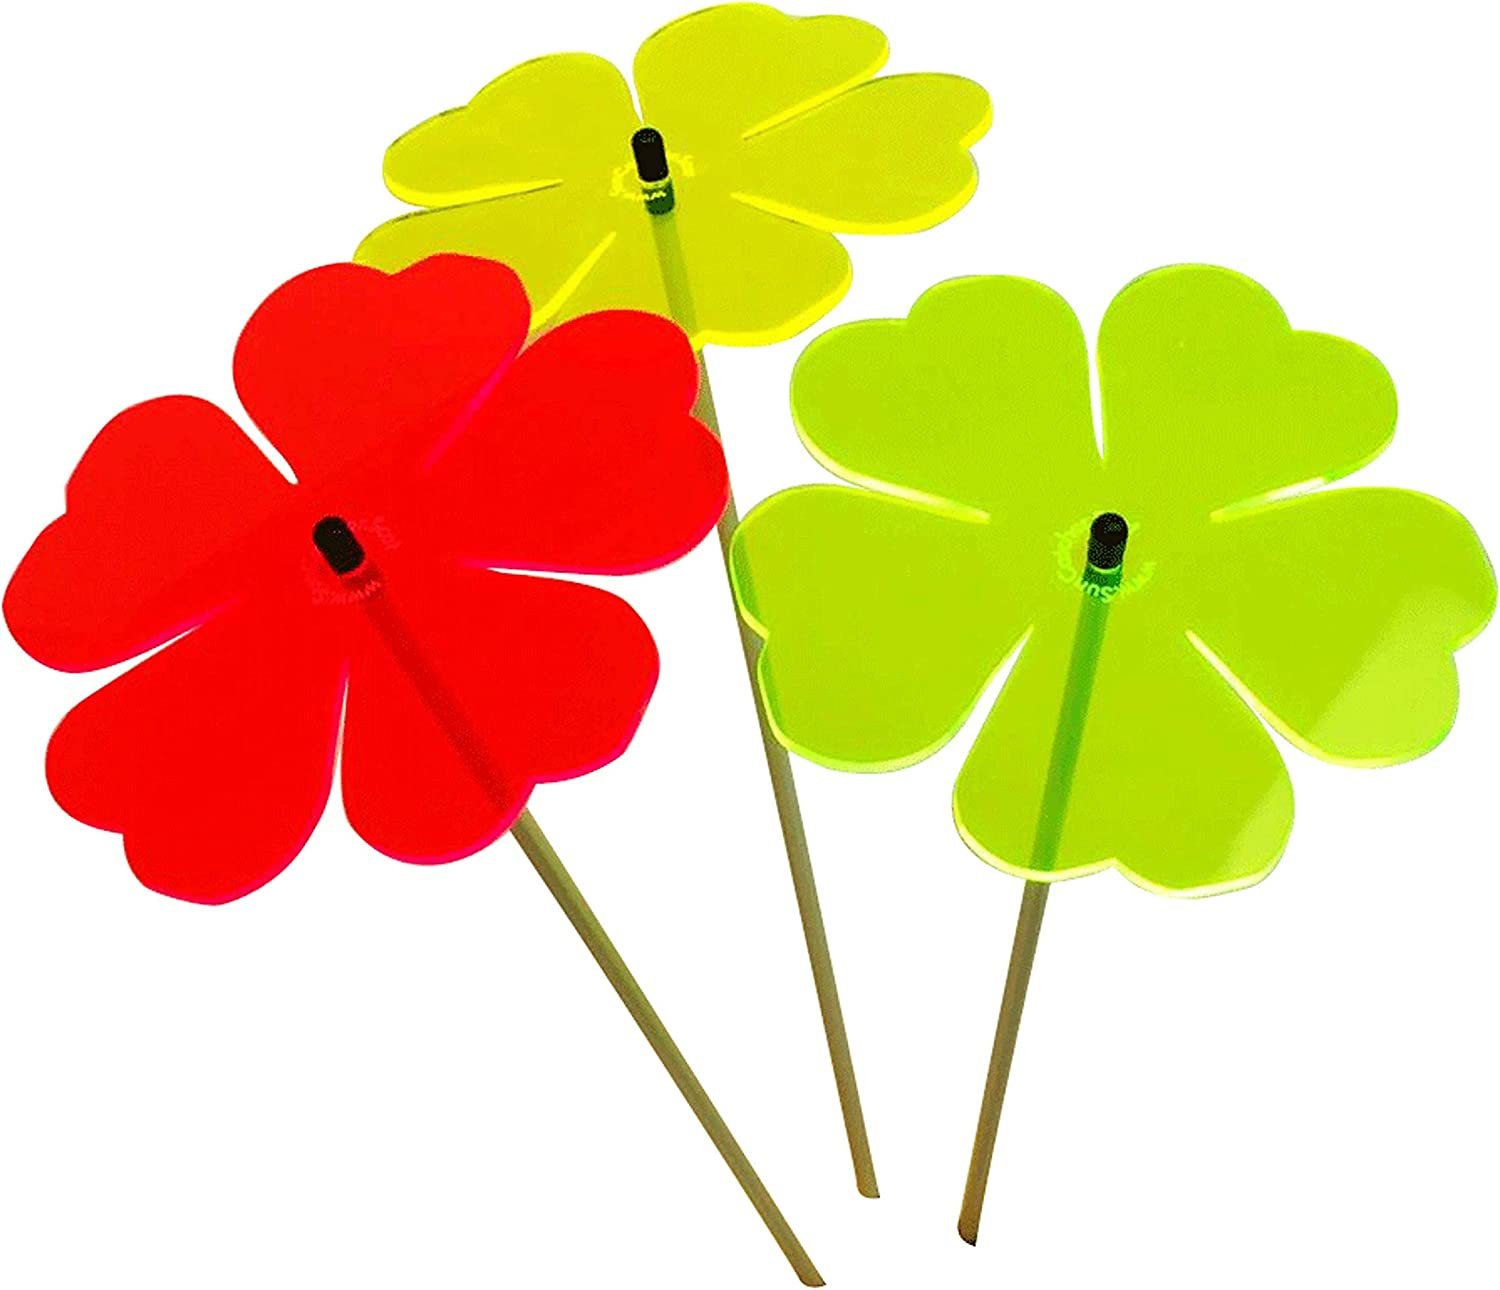 Suncatcher Garden Ornaments Double Blossom, Set of 3 Large Decorative Garden Stakes, Outdoor Yard Accessory, Great Gardeners Gift, Colour:red/Yellow/Green